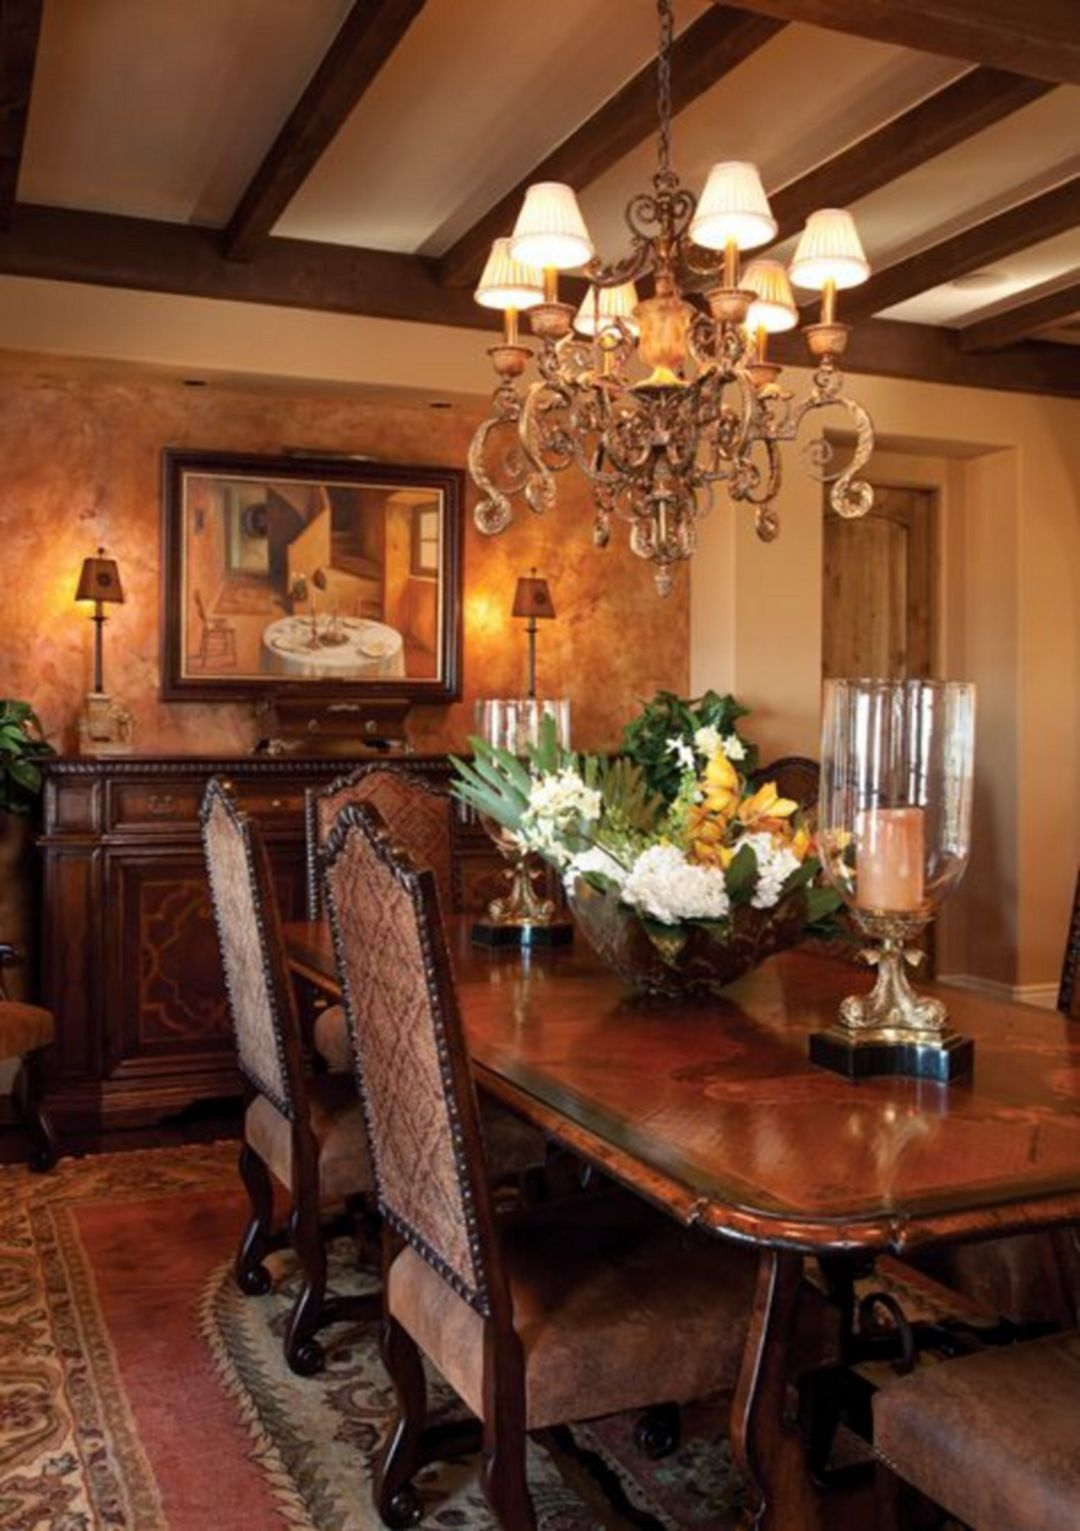 25 Mediterranean Dining Room Design Ideas For Amazing Home Dining Room Table Centerpieces Dining Room Decor Traditional Elegant Dining Room